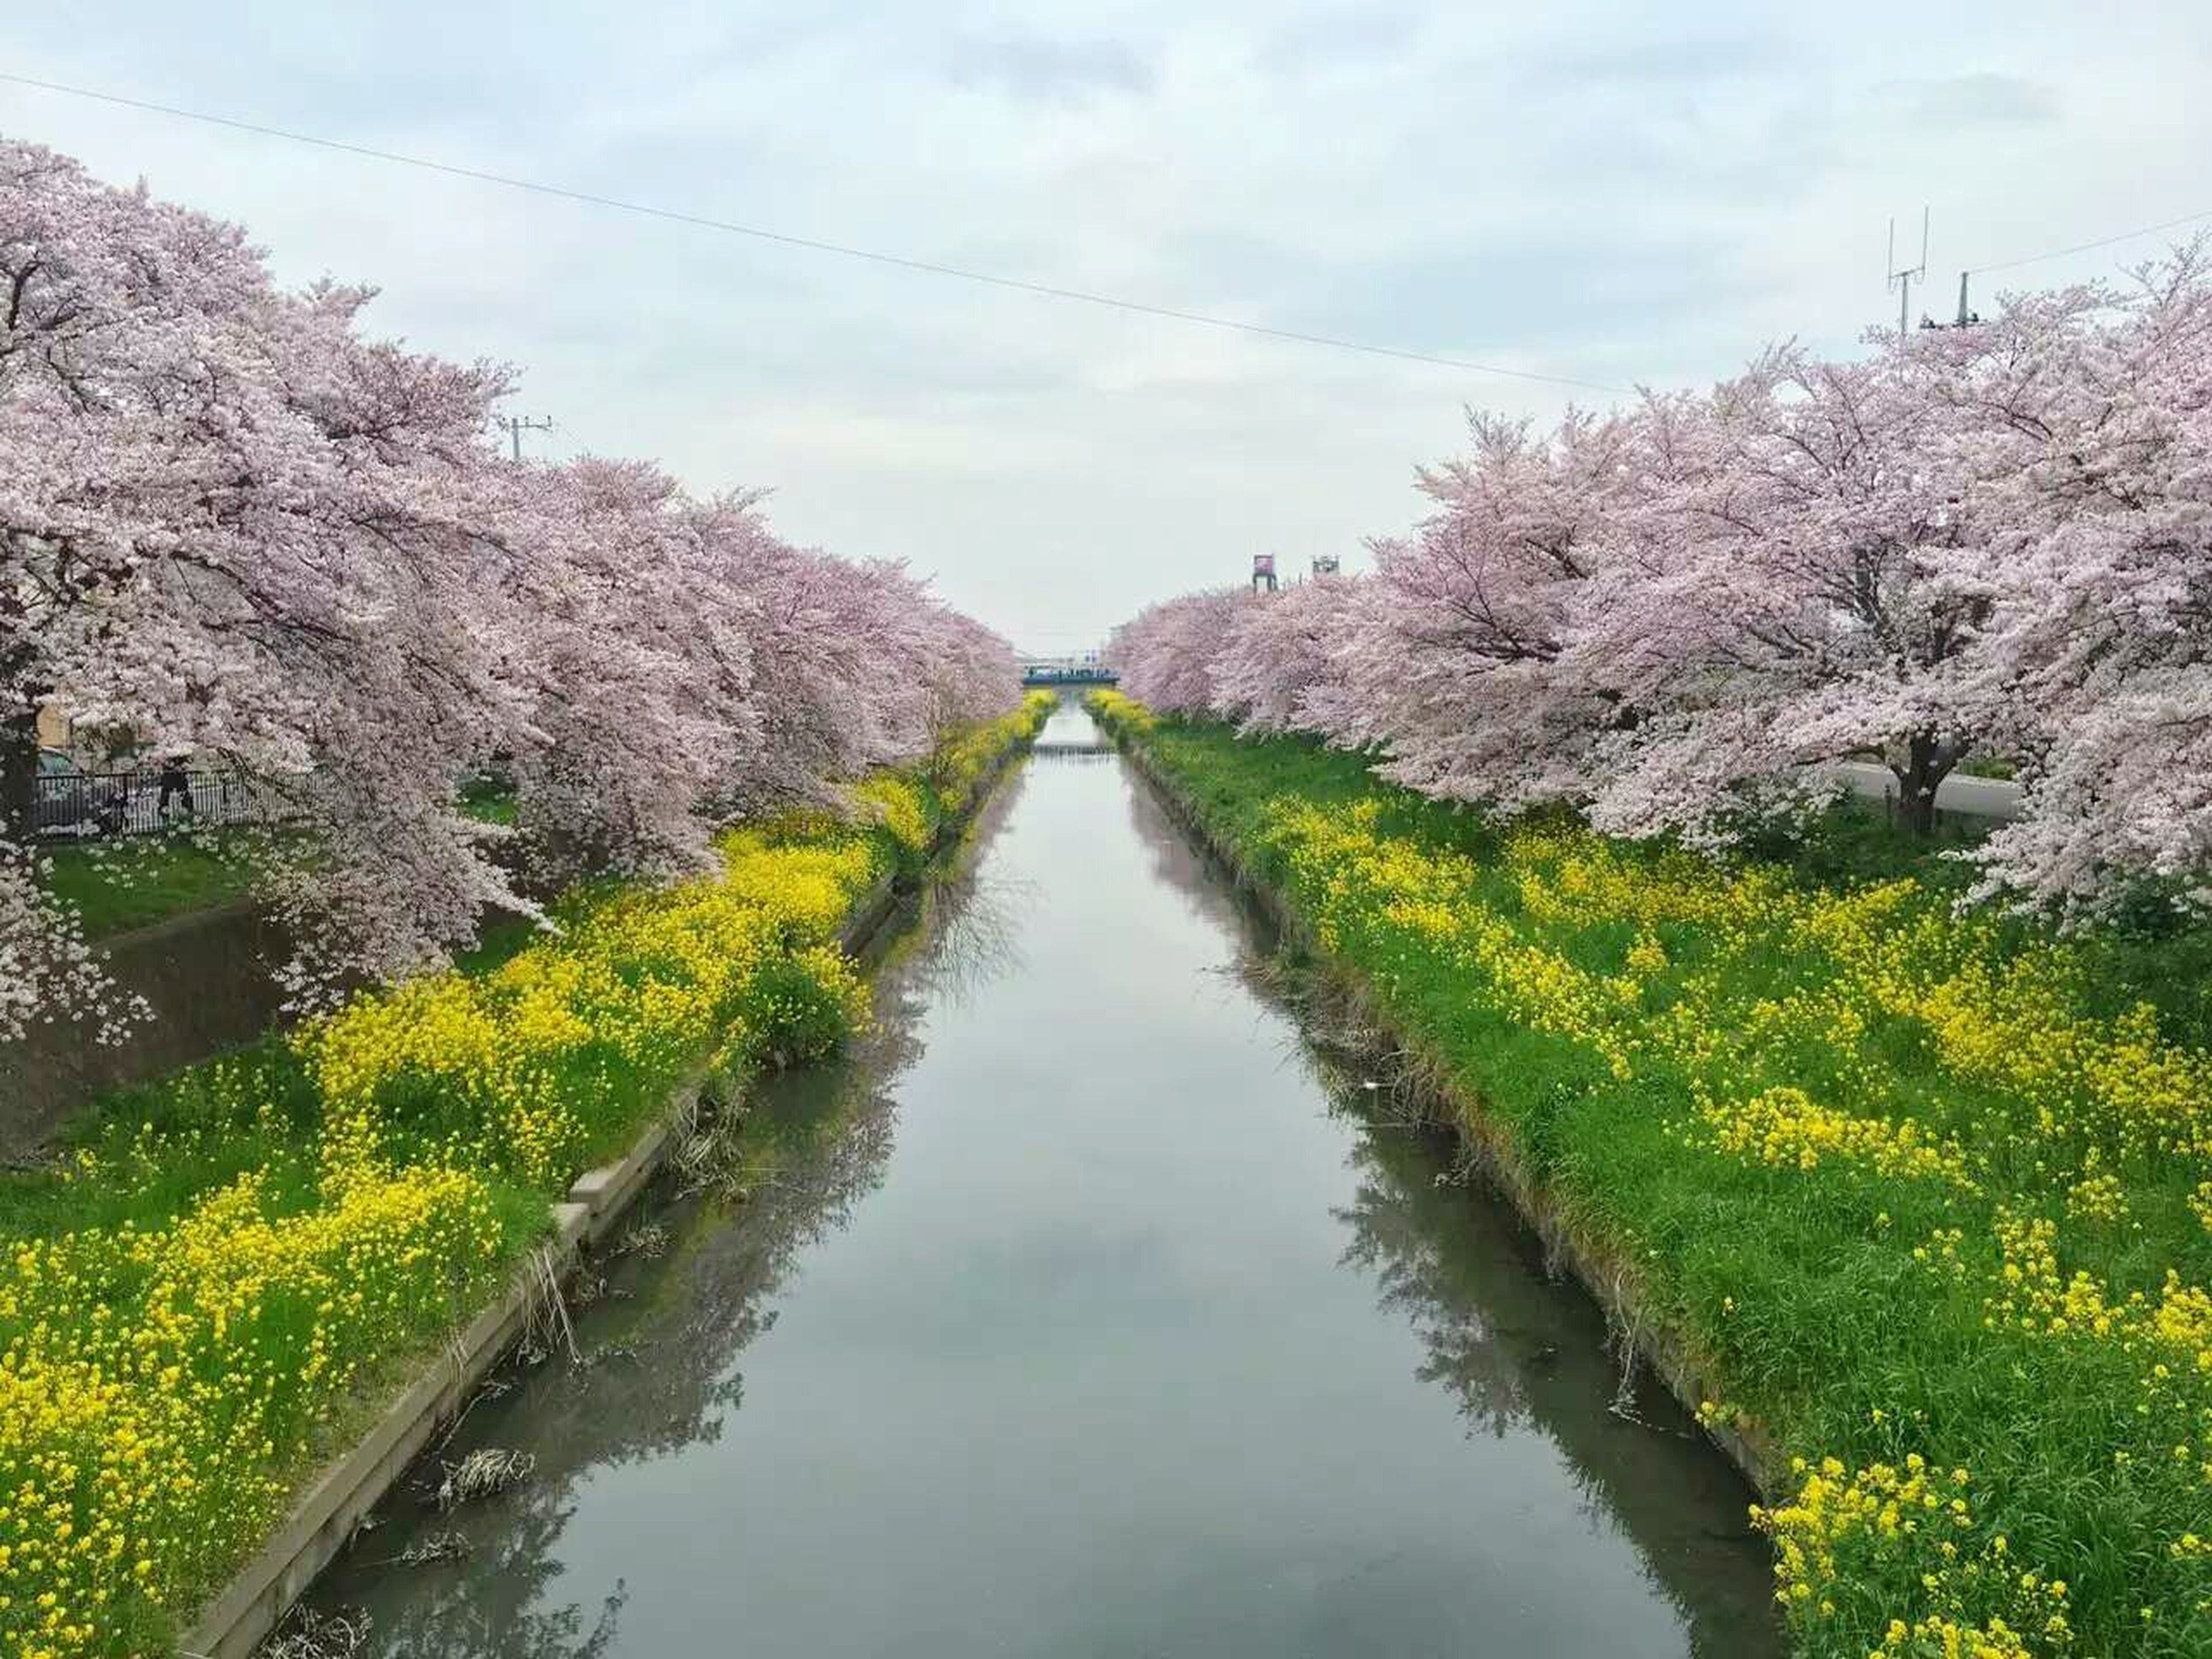 tree, tranquility, tranquil scene, sky, growth, beauty in nature, nature, water, scenics, diminishing perspective, the way forward, plant, flower, landscape, day, green color, stream, river, vanishing point, cloud - sky